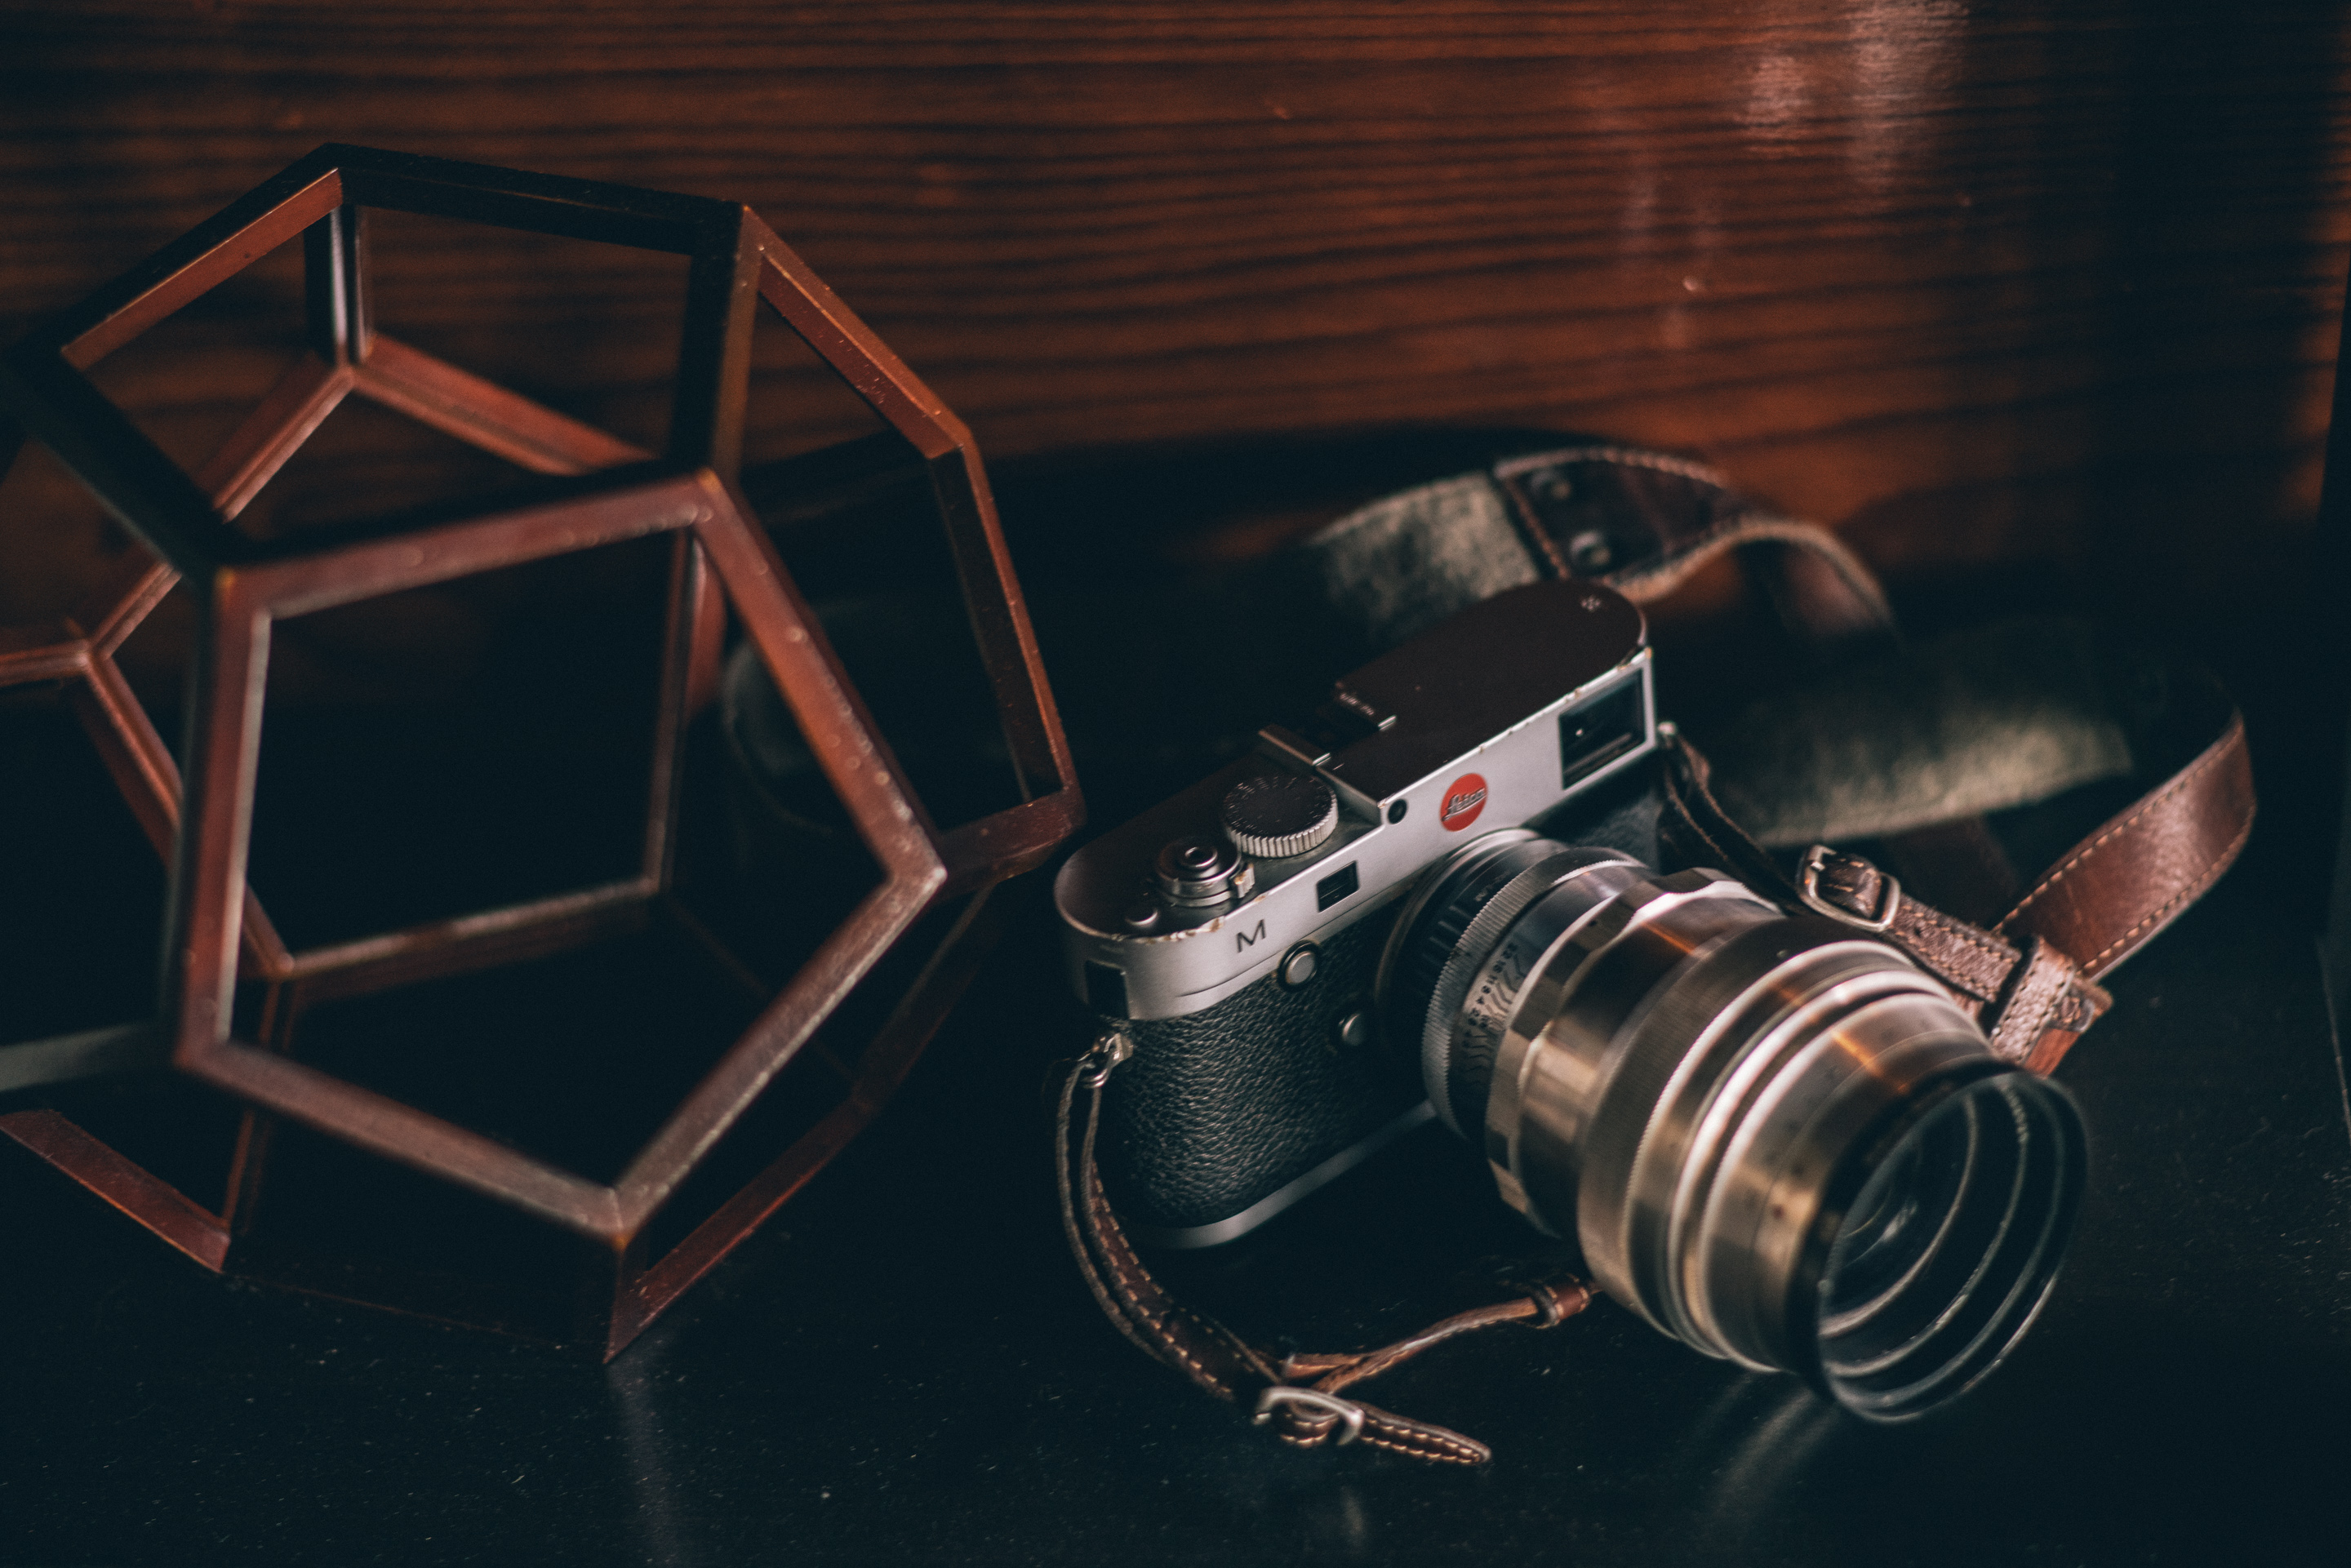 Leica M with Helios 40 lens